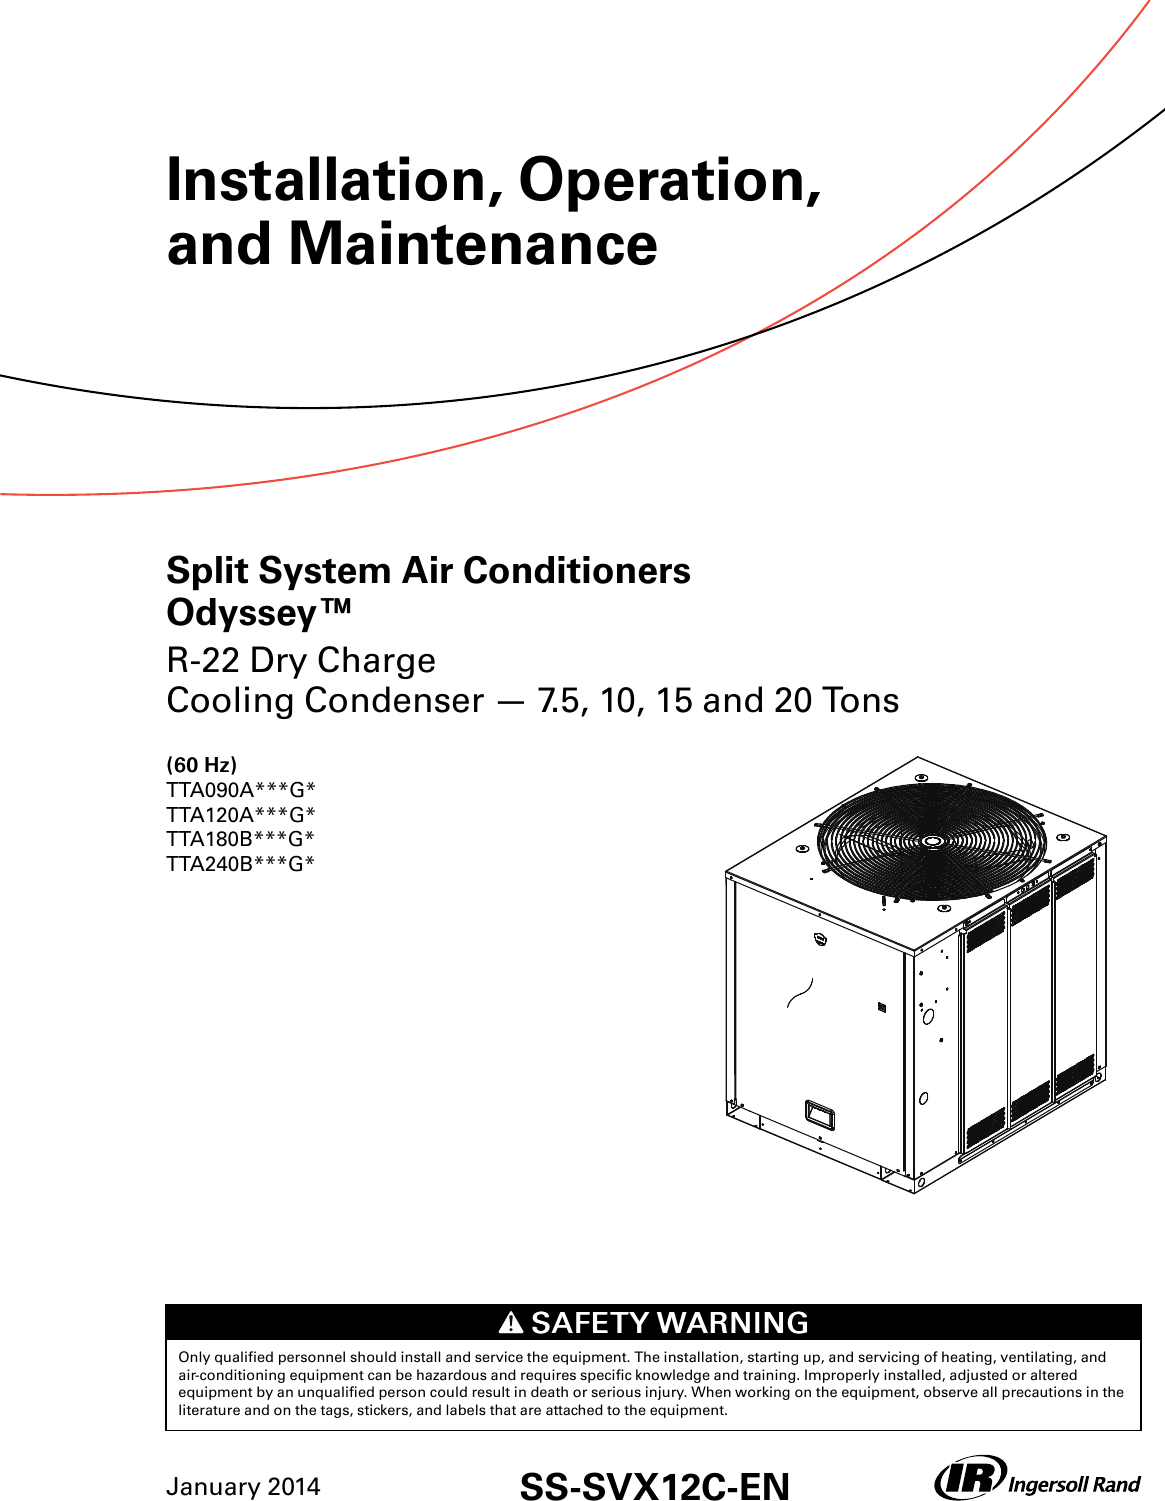 rdi refrigeration unit wiring diagrams trane odyssey 6 to 25 tons installation and maintenance manual  trane odyssey 6 to 25 tons installation